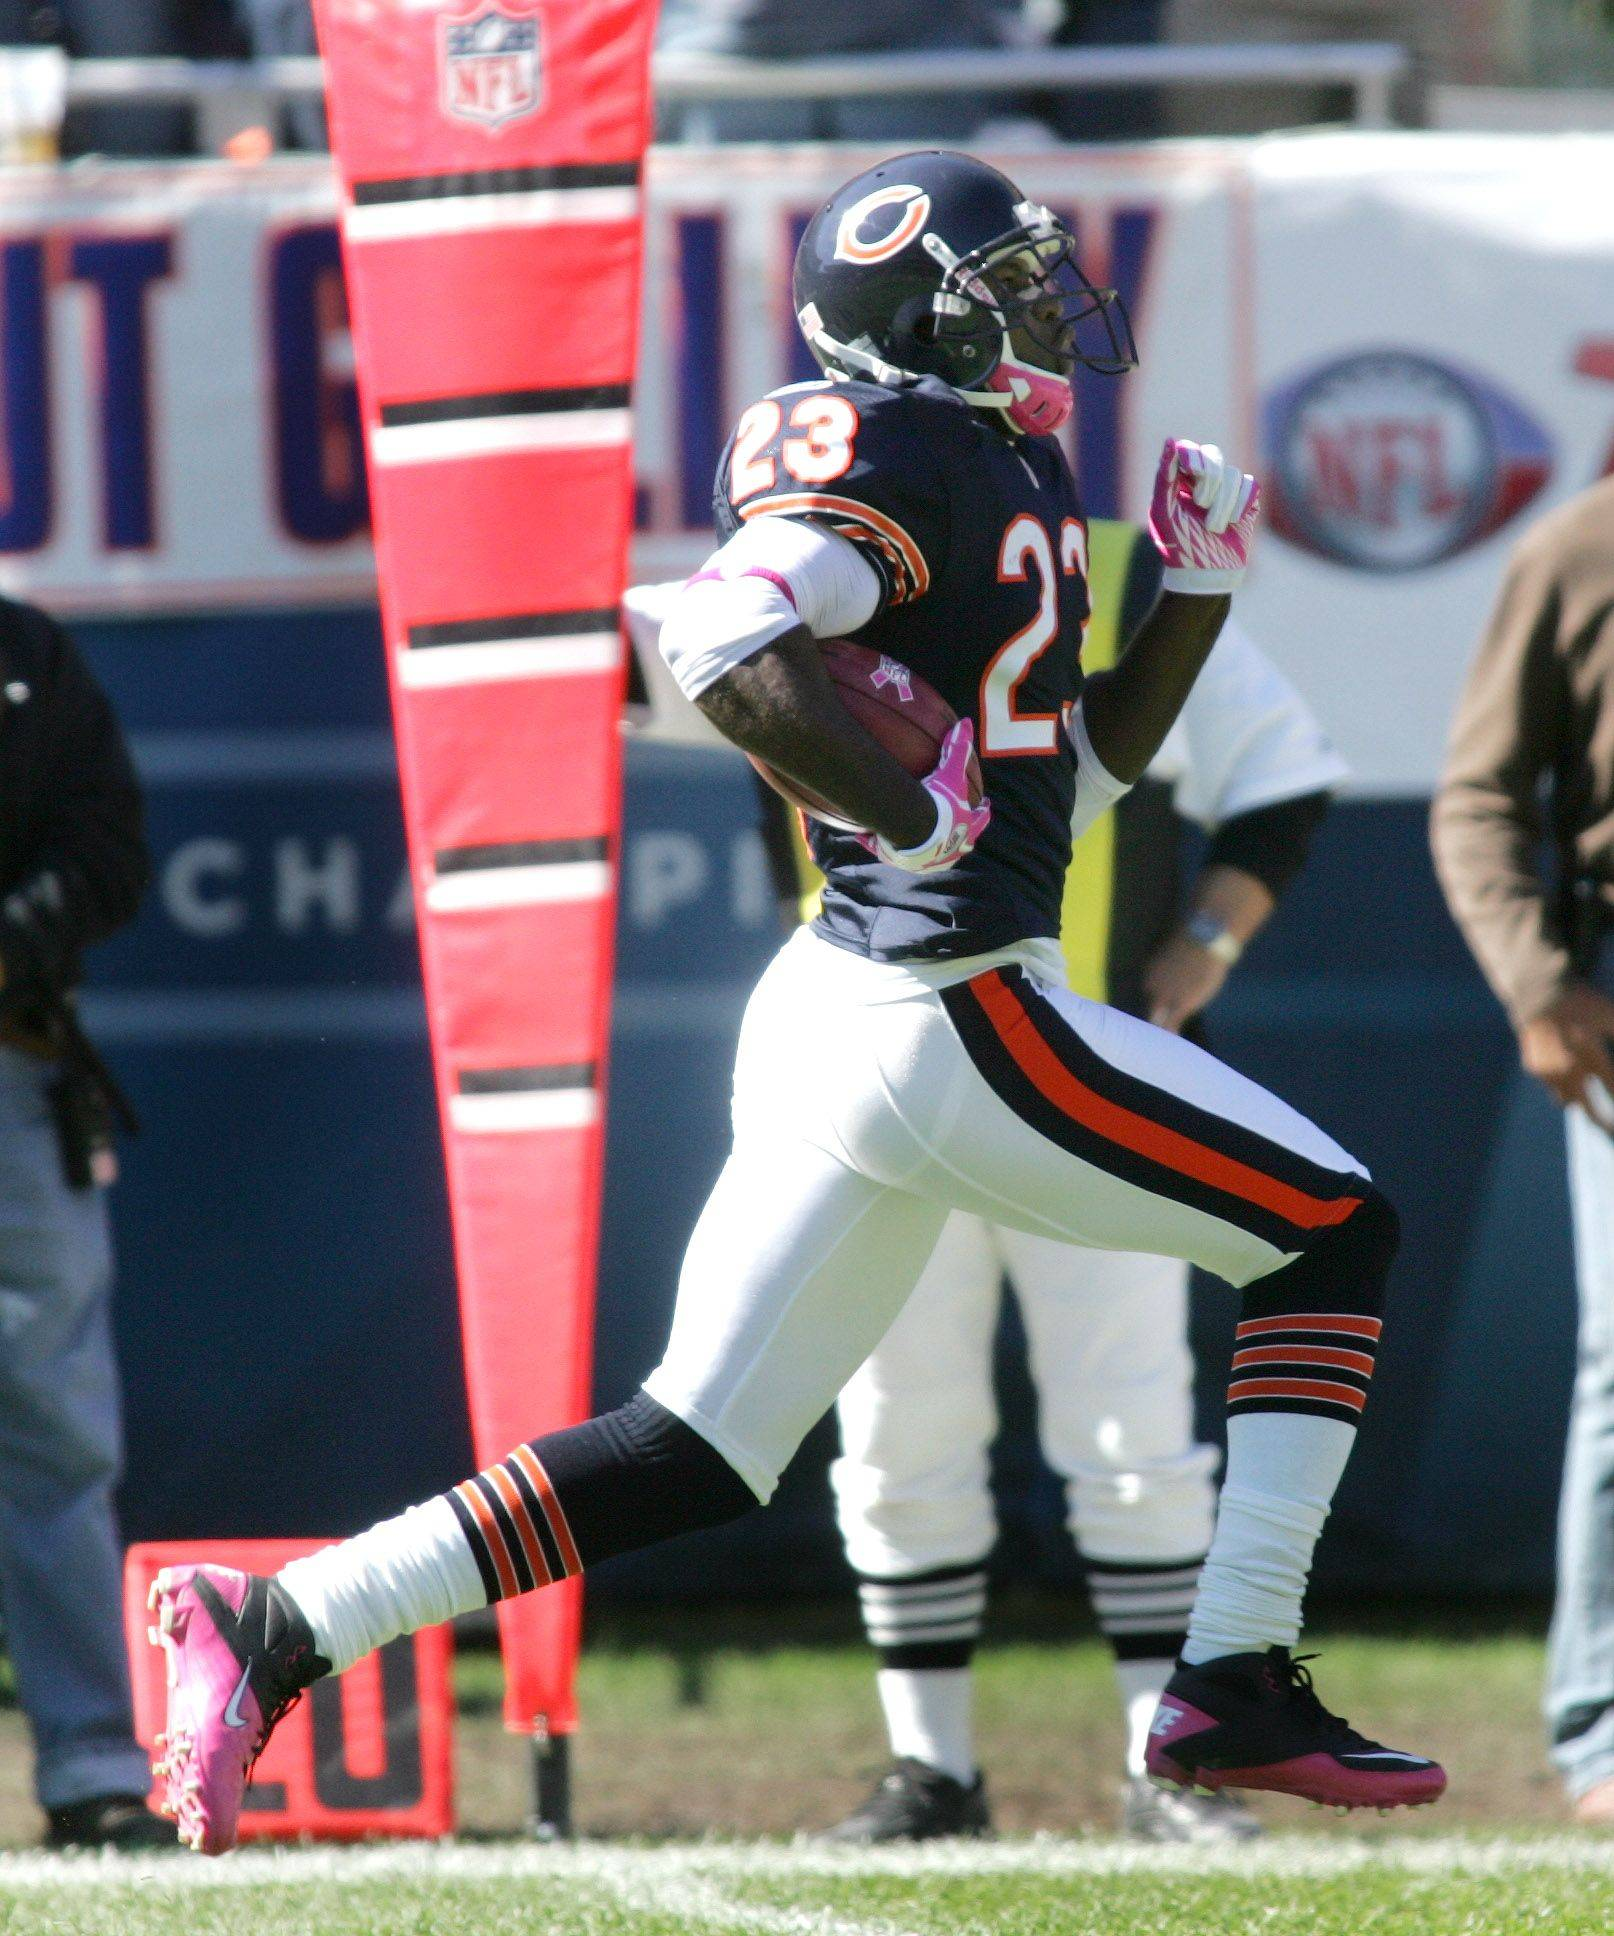 Devin Hester of the Chicago Bears runs 69 yards for a touchdown against the Carolina Panthers at Soldier Field.